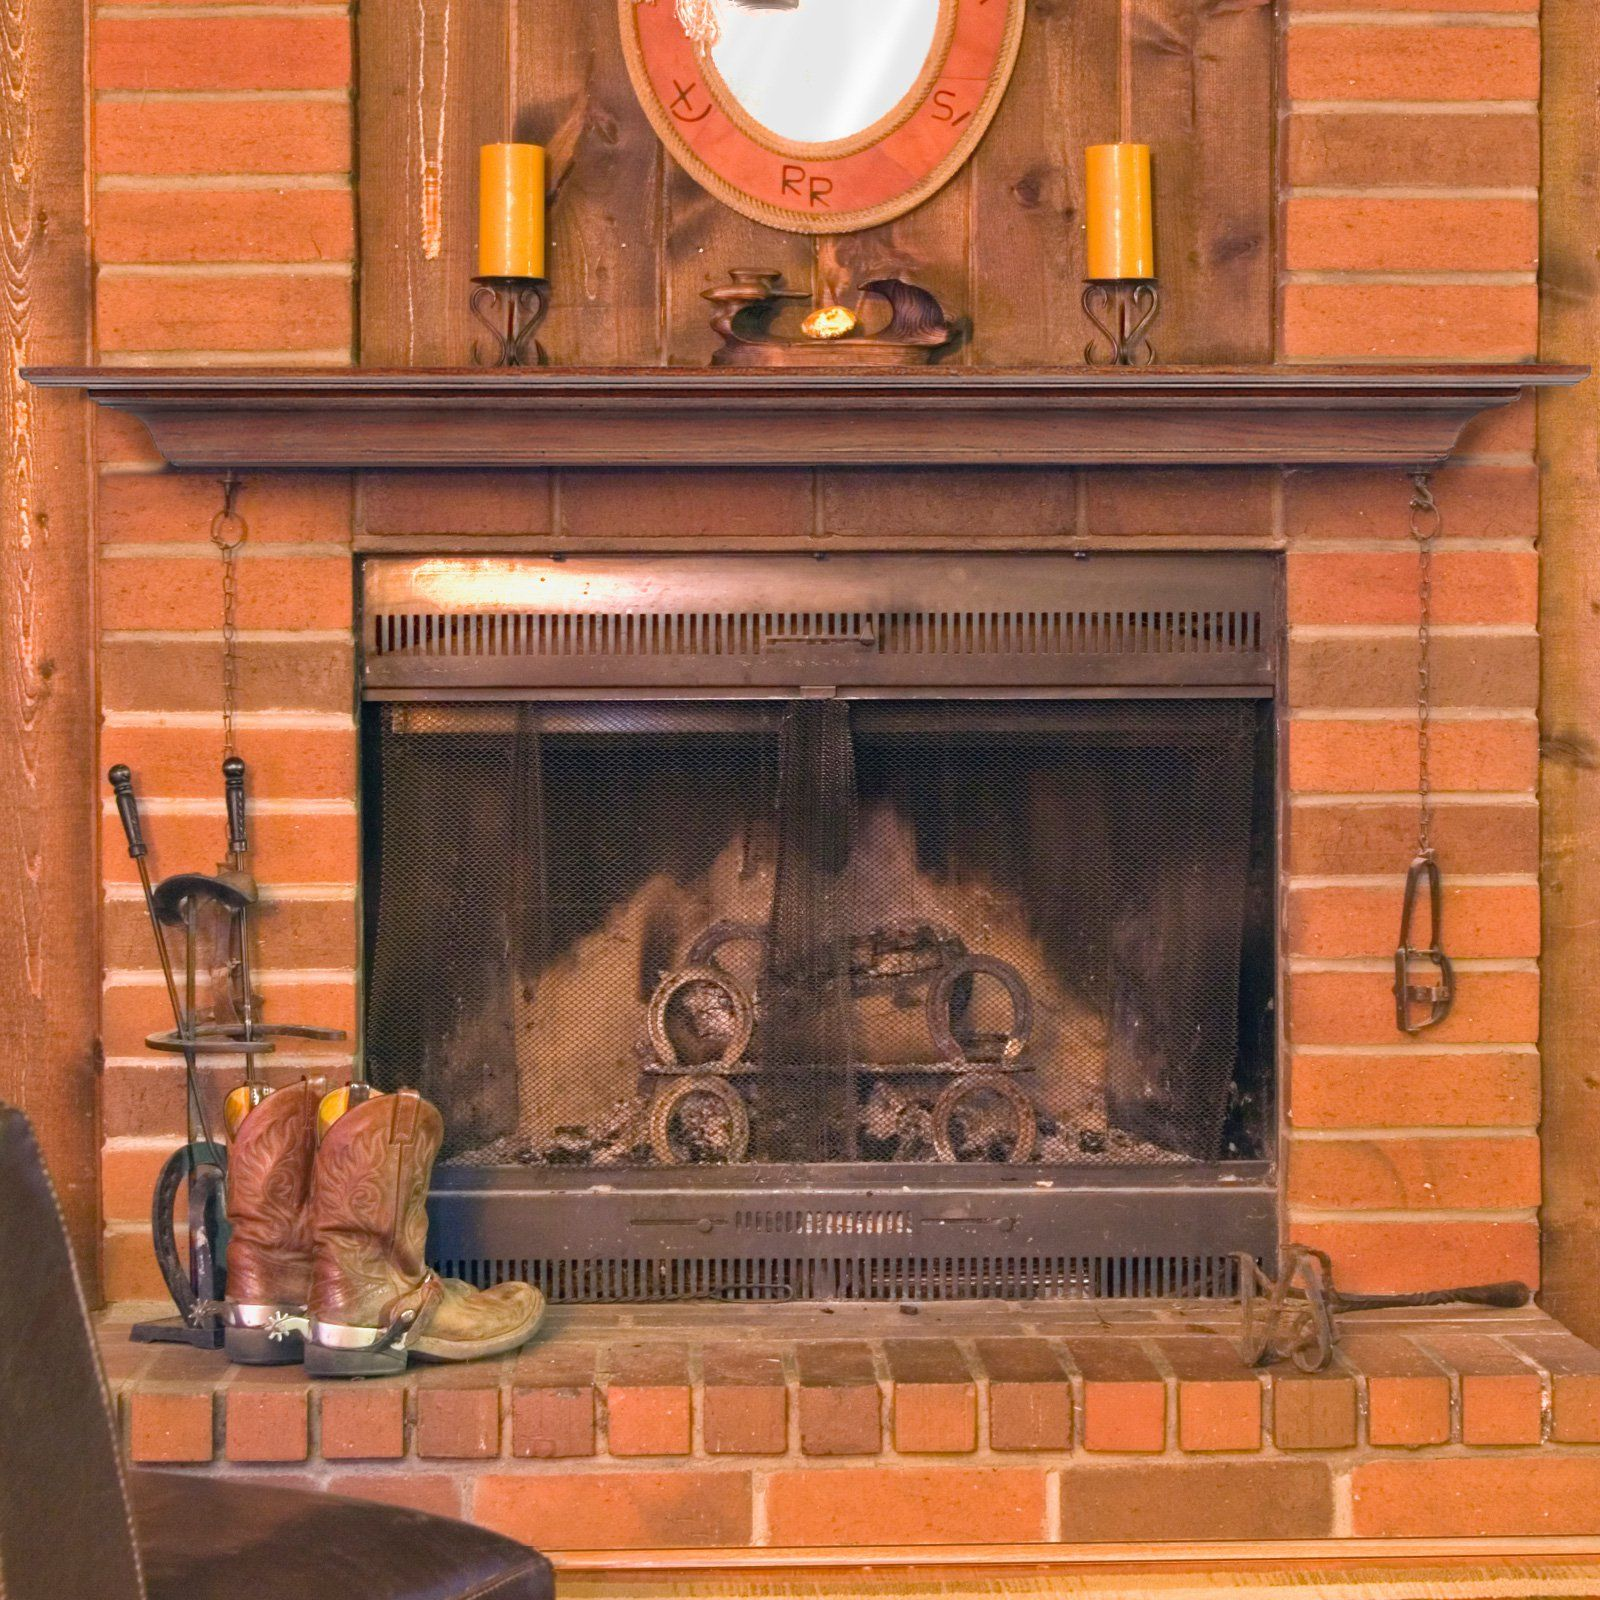 Pearl Mantels Homestead Transitional Fireplace Mantel Shelf Transitional Fireplace Mantels Transitional Fireplaces Fireplace Mantel Shelf